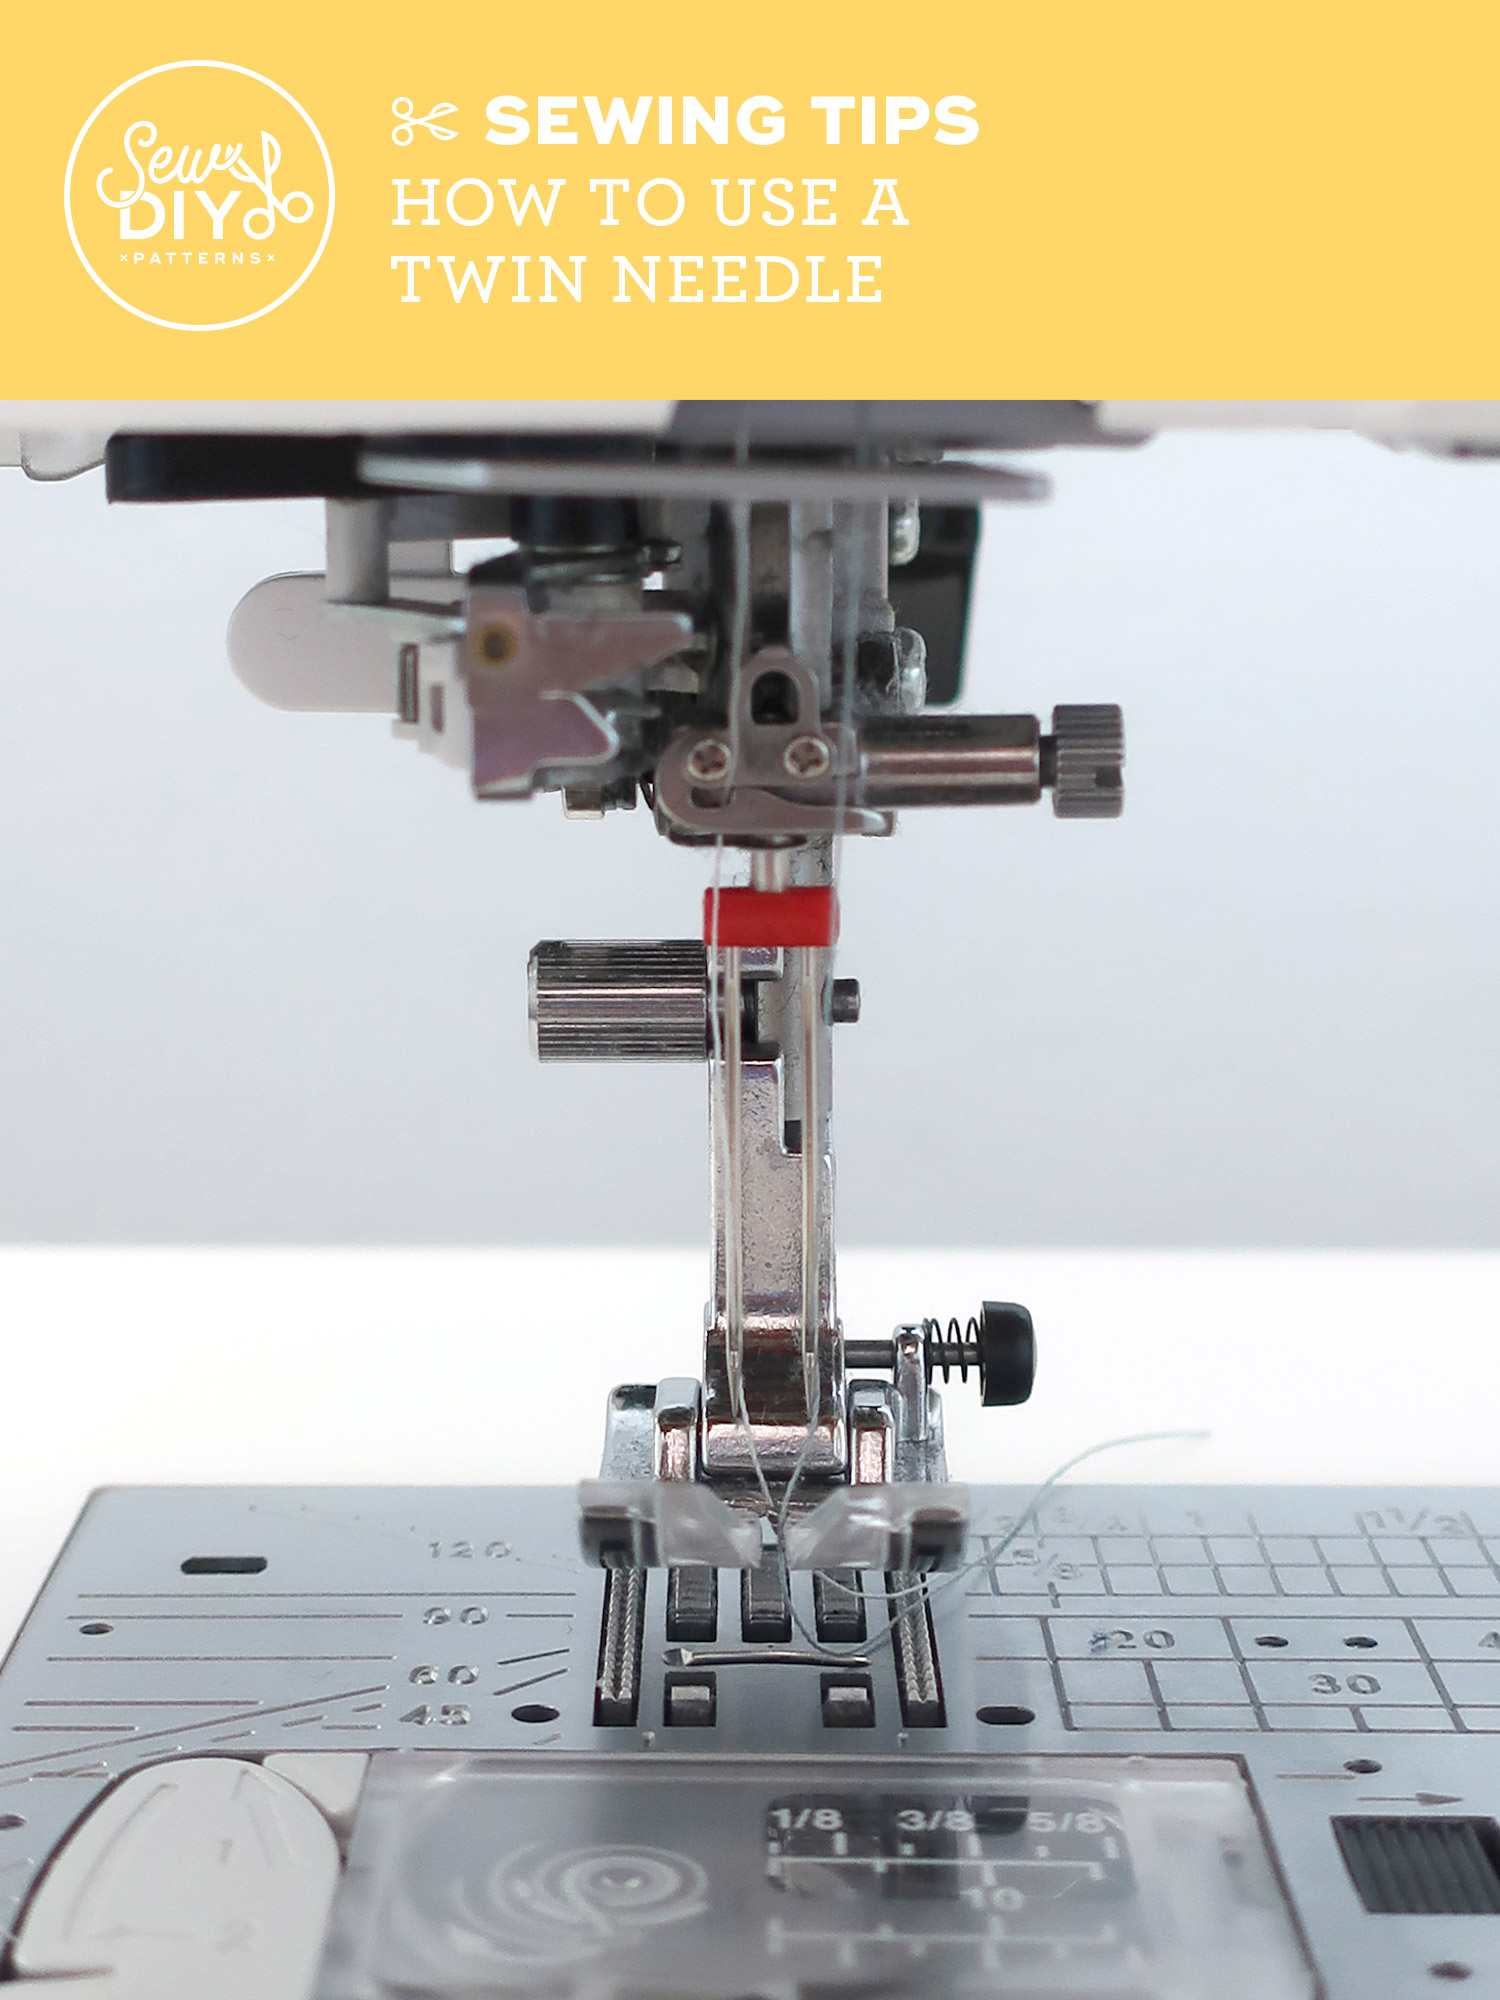 Learn how to use a twin needle and trouble shoot common issues | Sew DIY